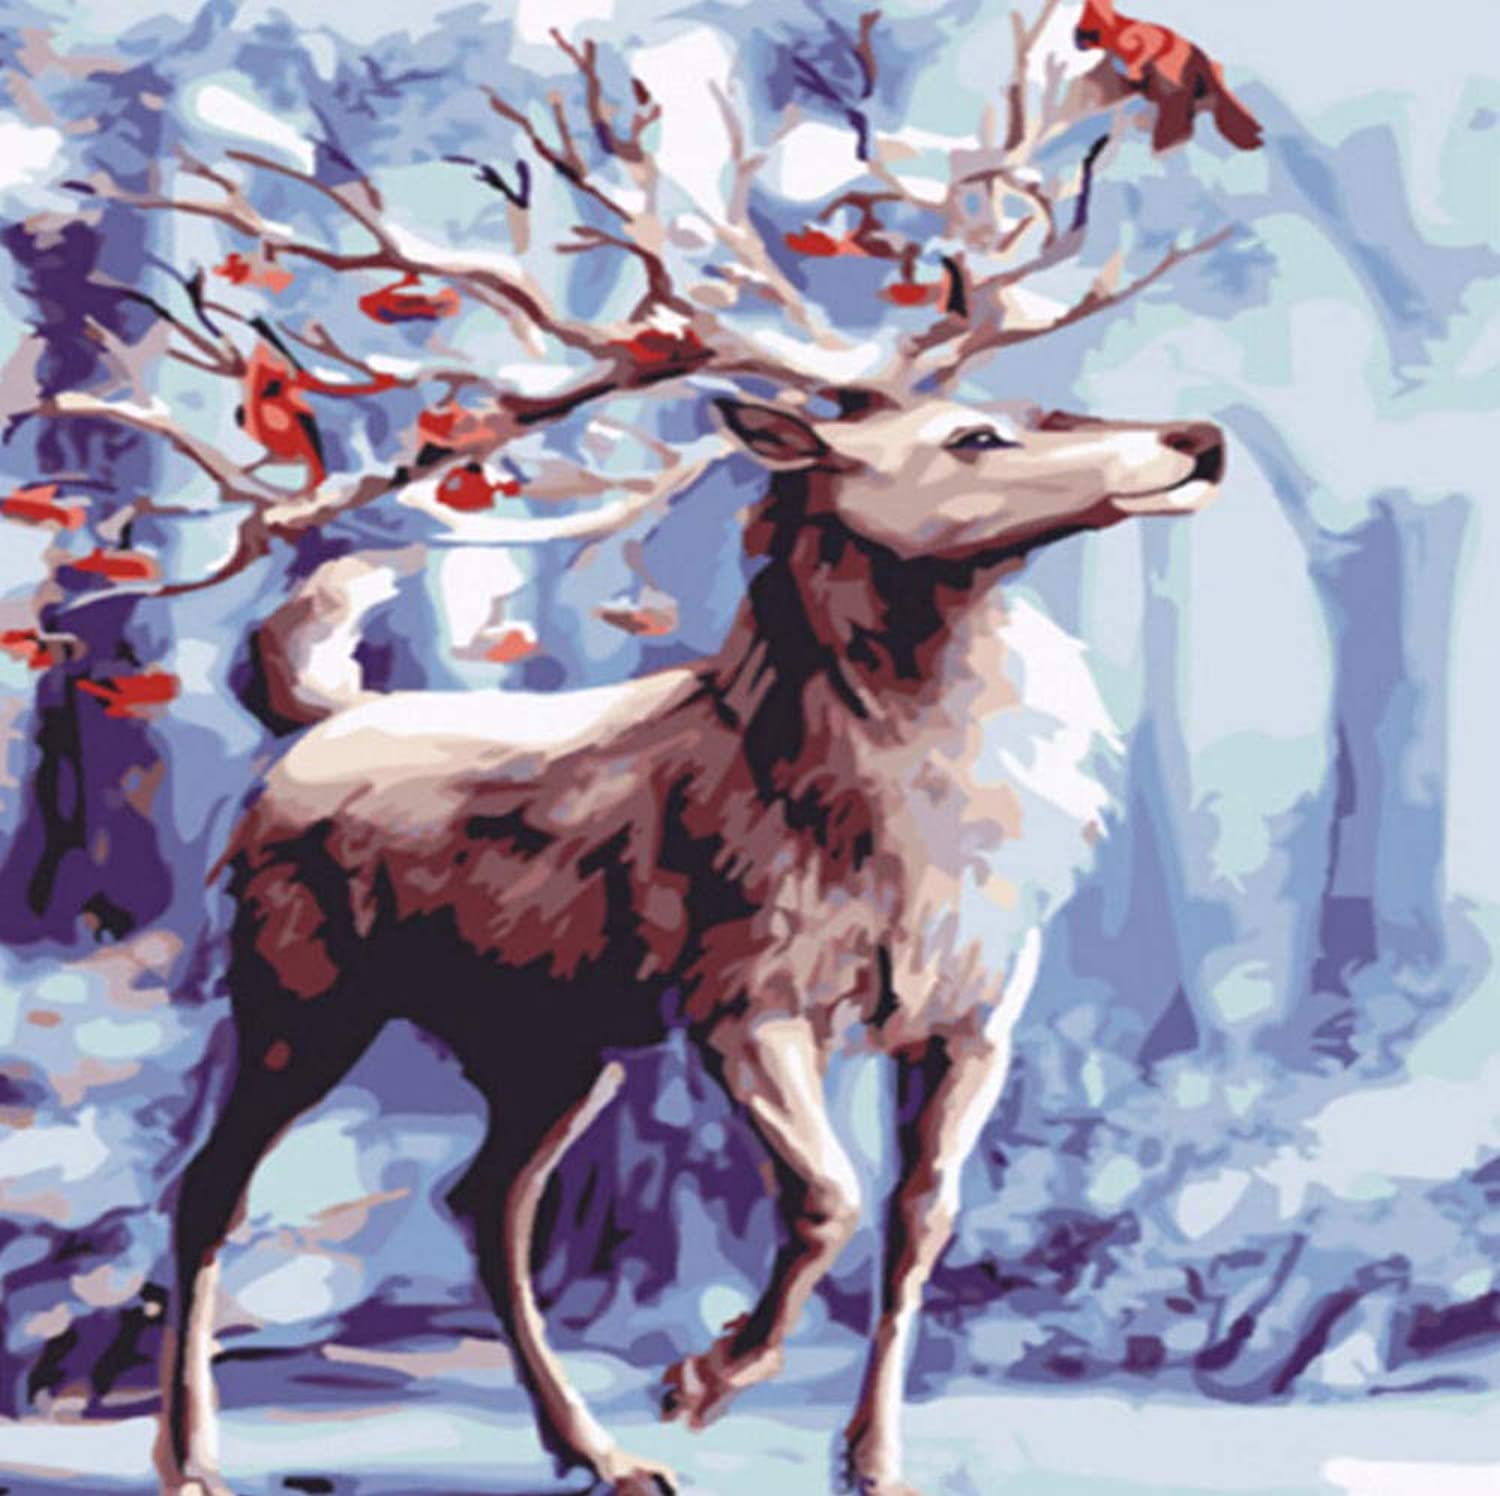 Snow Deer Oil Painting by Numbers DIY Abstract Animal Digital Picture coloring by Numbers On Canvas Unique Gift Home Decor 50x60CM